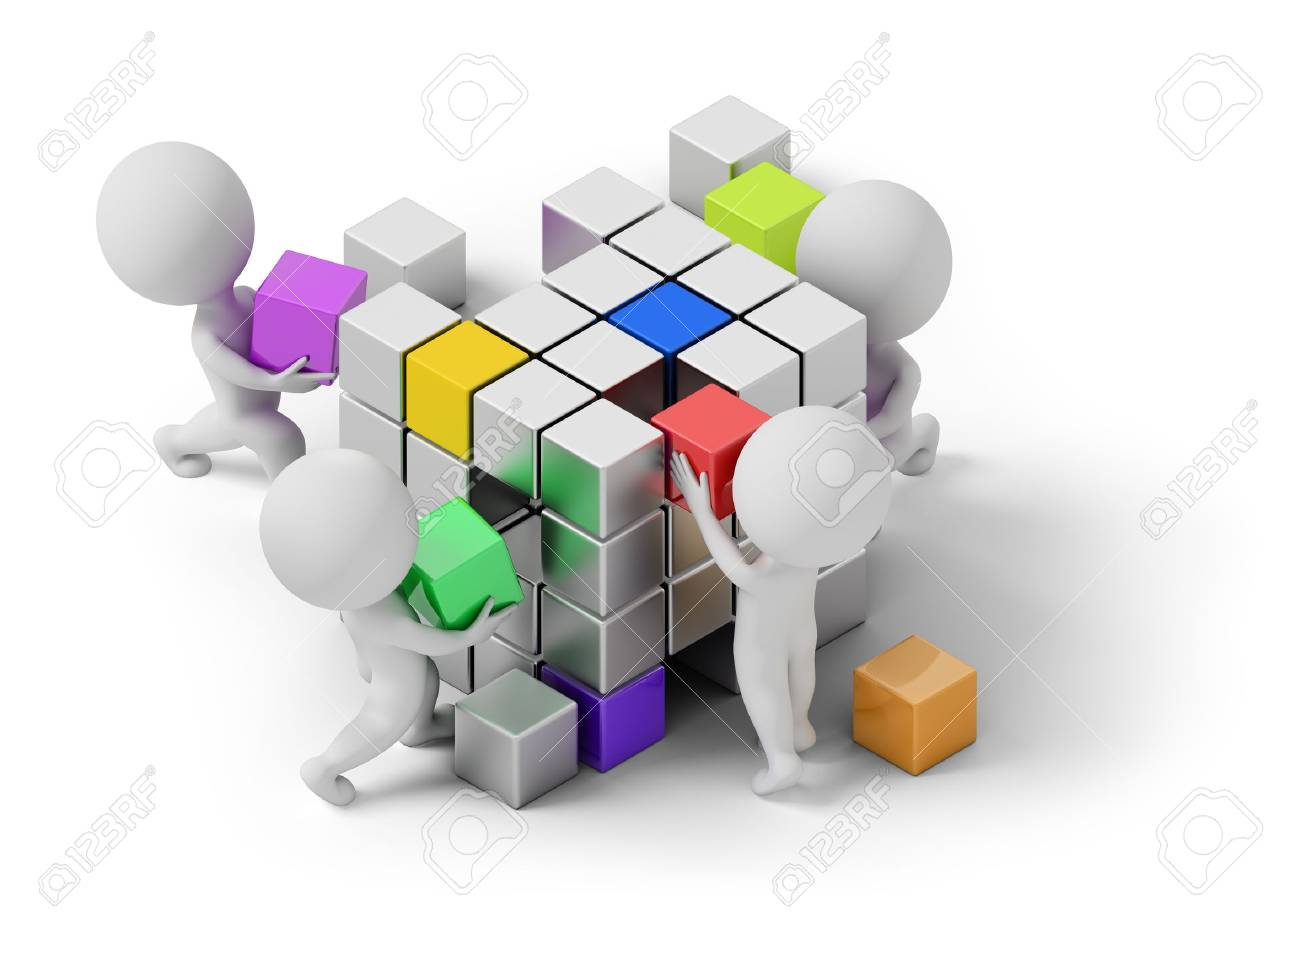 isometric people - concept of creating. 3d image. White background. - 69567600